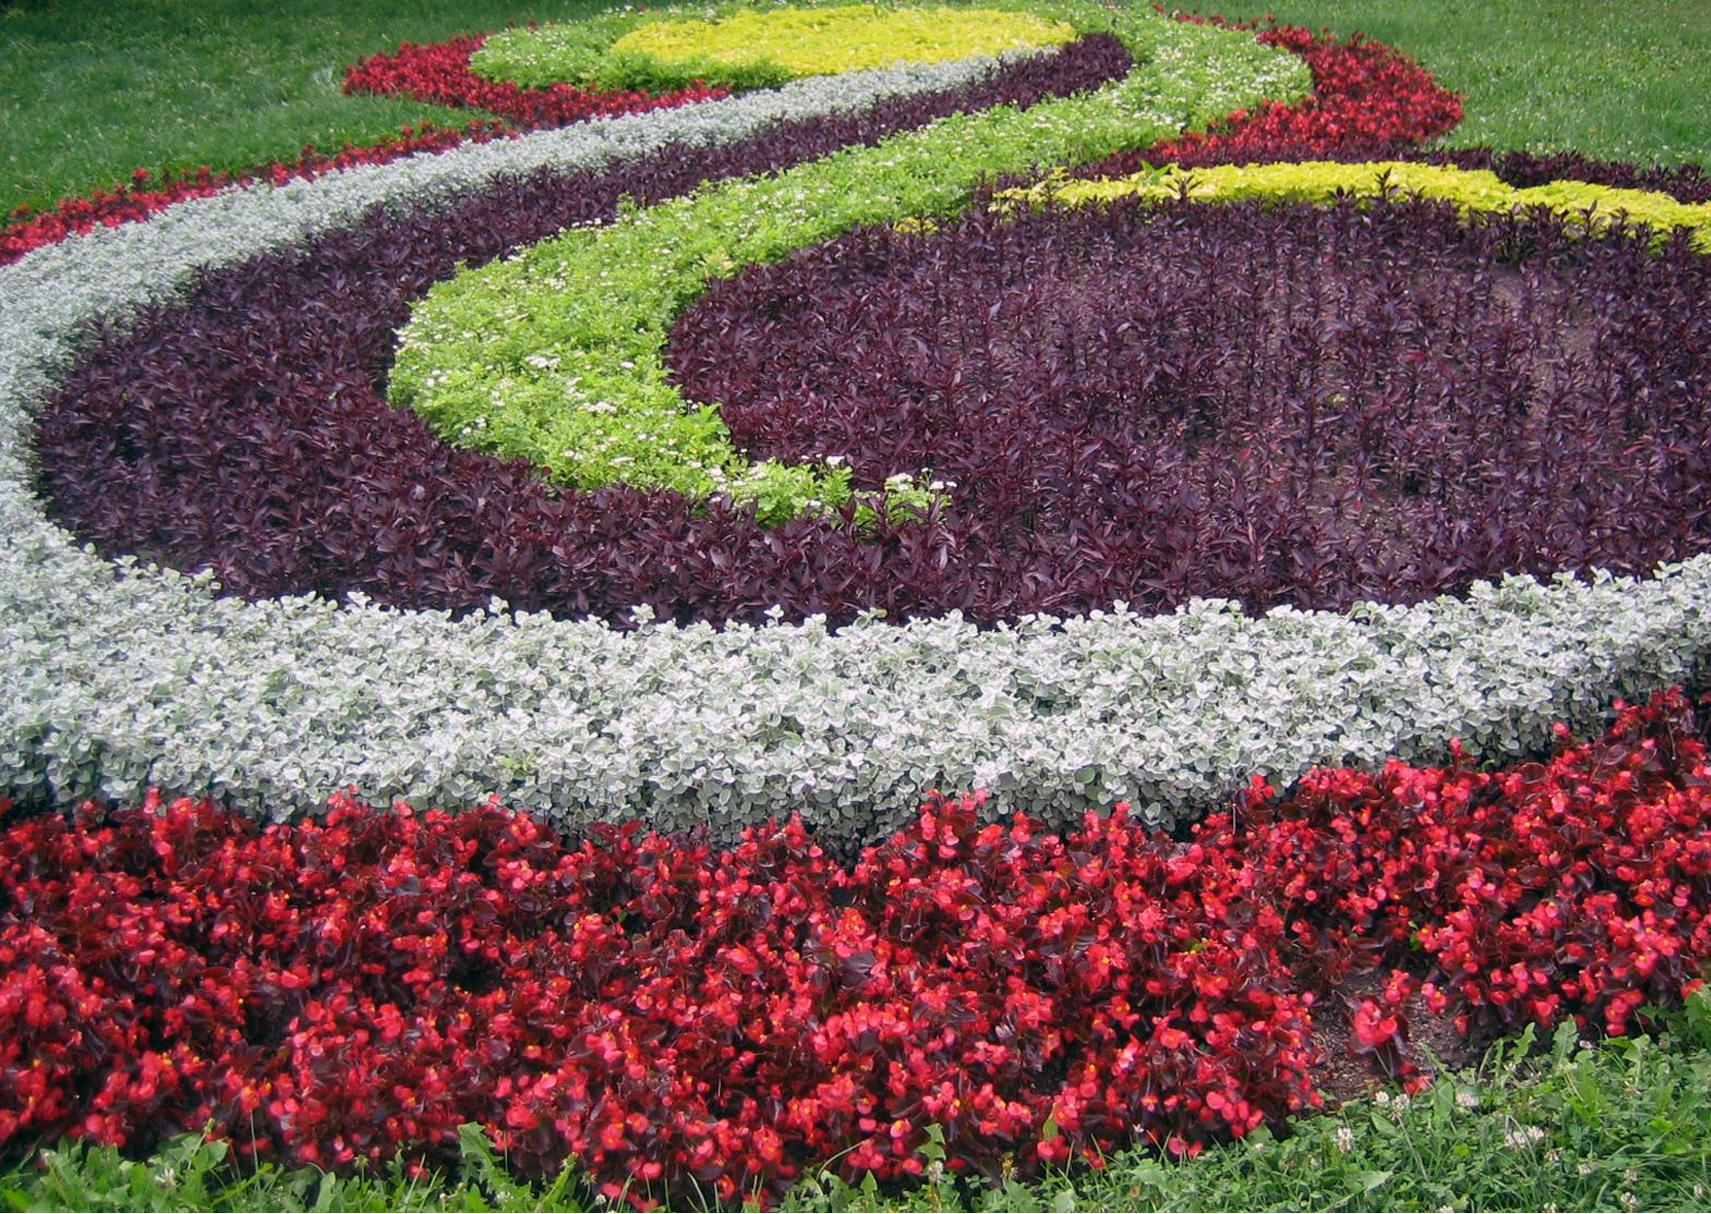 The diy beautiful flower bed designs and plans for your for Stunning garden designs